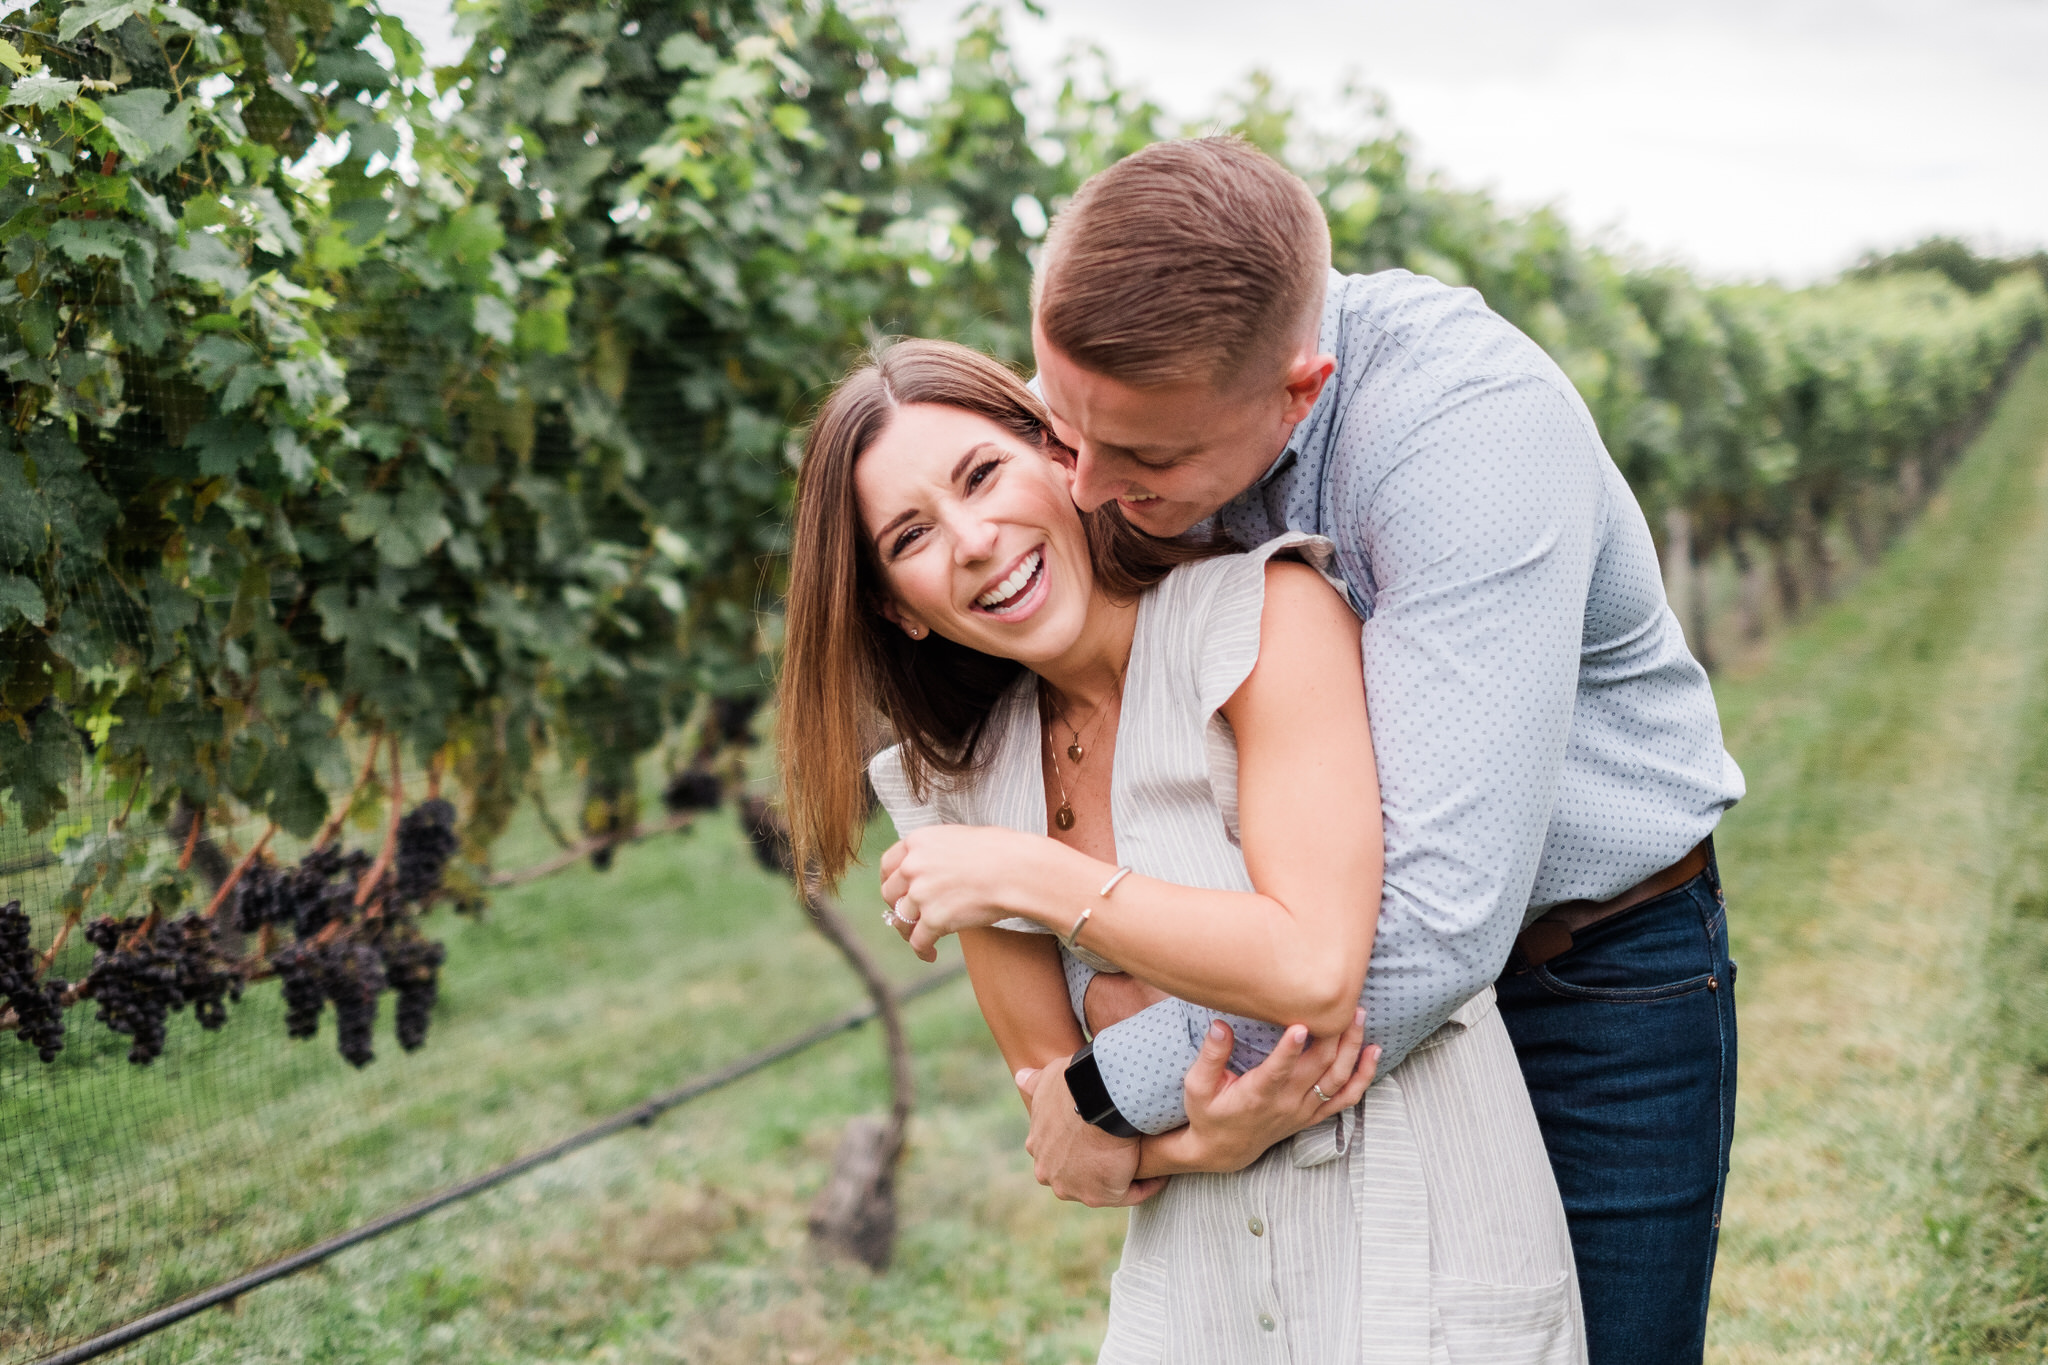 Victoria and Dan - Long Island Vineyard - Long Island Engagement Session - NYC Wedding Photographer - New York Wedding Photographer64.jpg